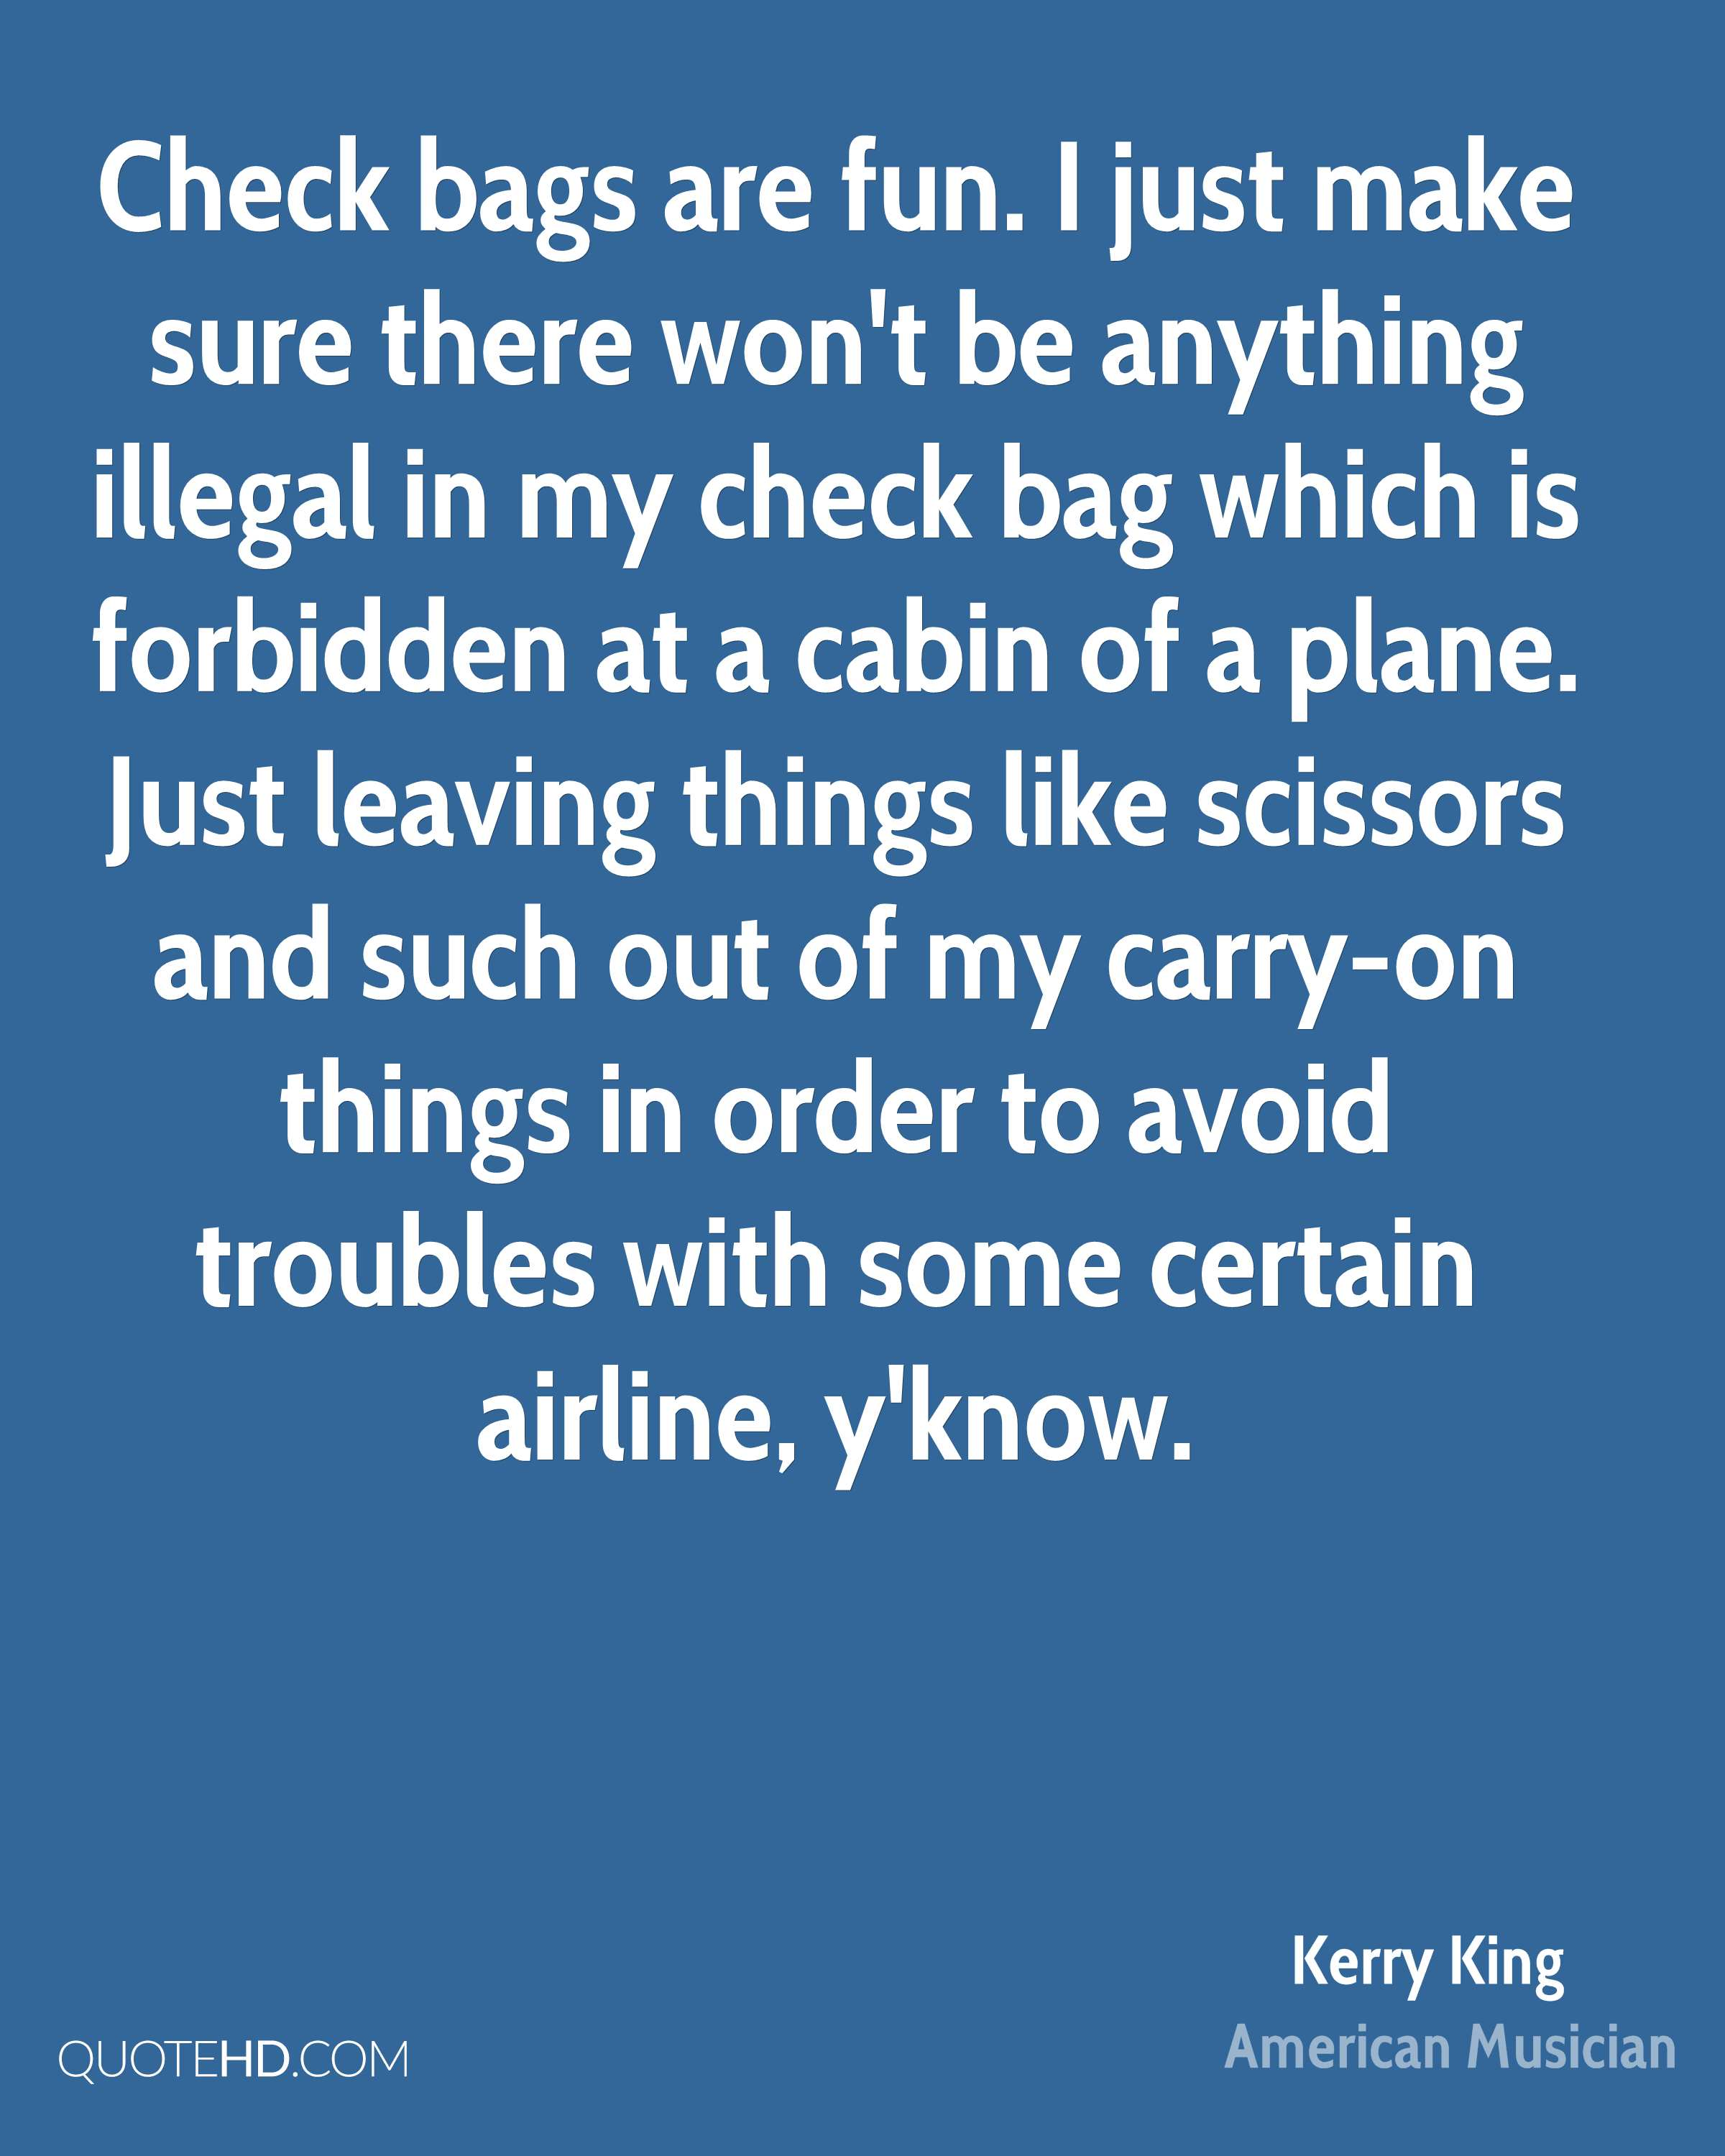 Check bags are fun. I just make sure there won't be anything illegal in my check bag which is forbidden at a cabin of a plane. Just leaving things like scissors and such out of my carry-on things in order to avoid troubles with some certain airline, y'know.